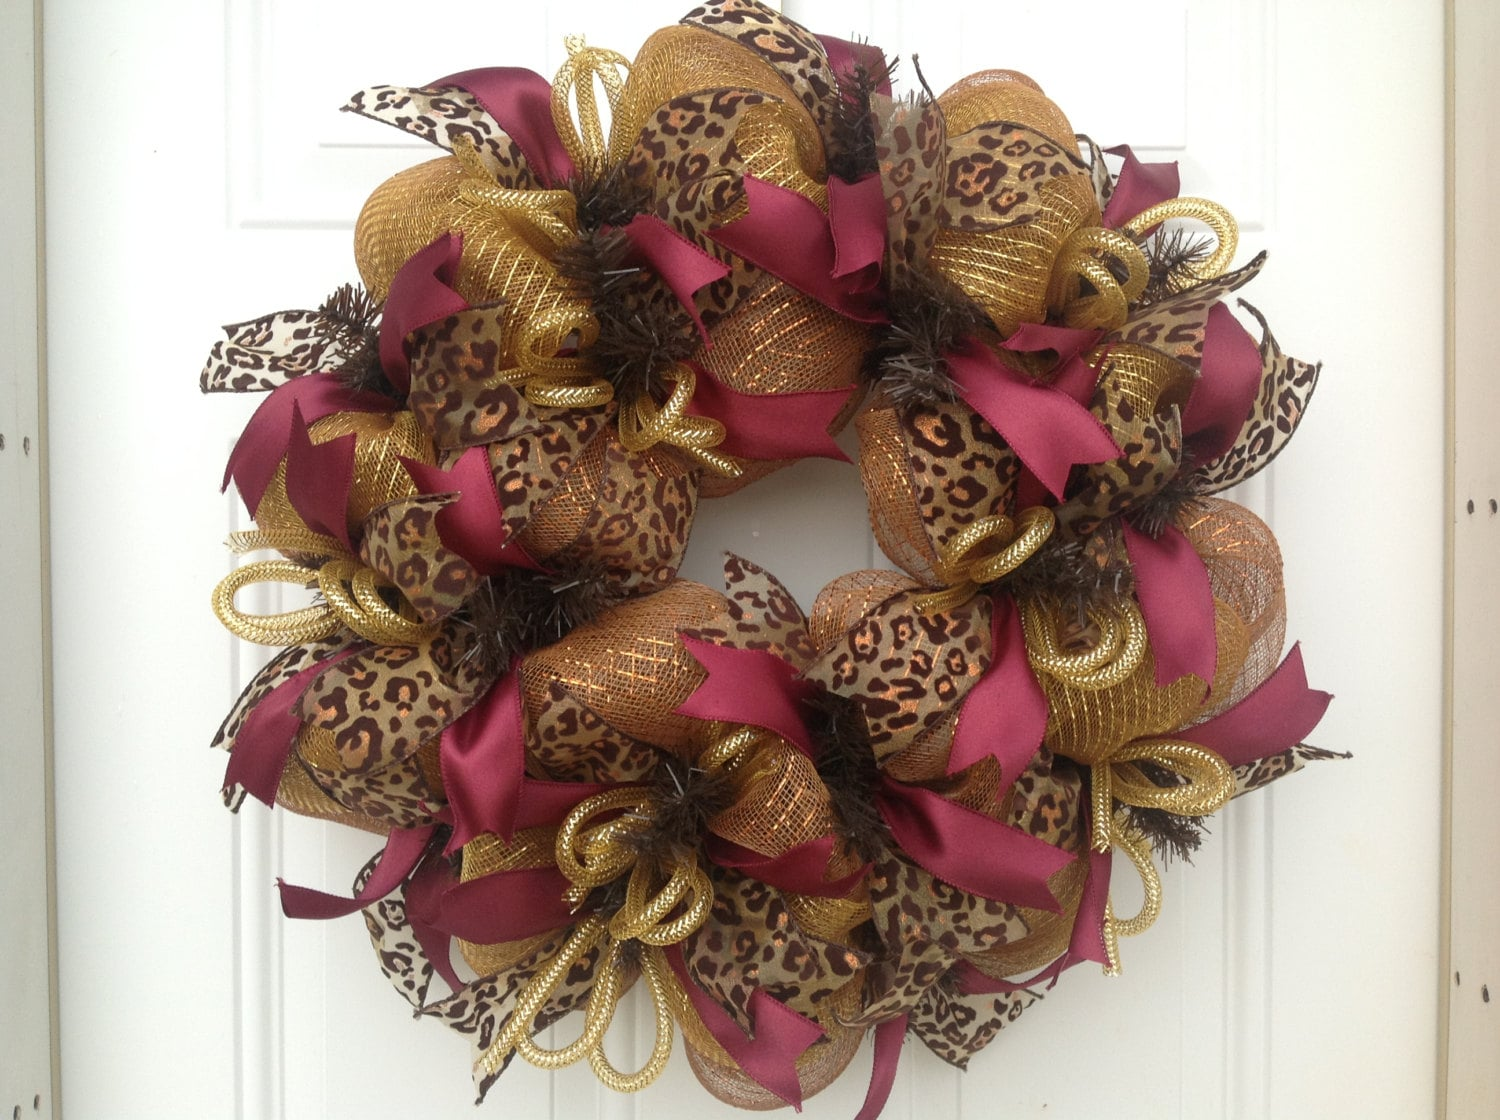 Leopard Animal Print Deco Mesh Wreath For Door Or Wall Decor